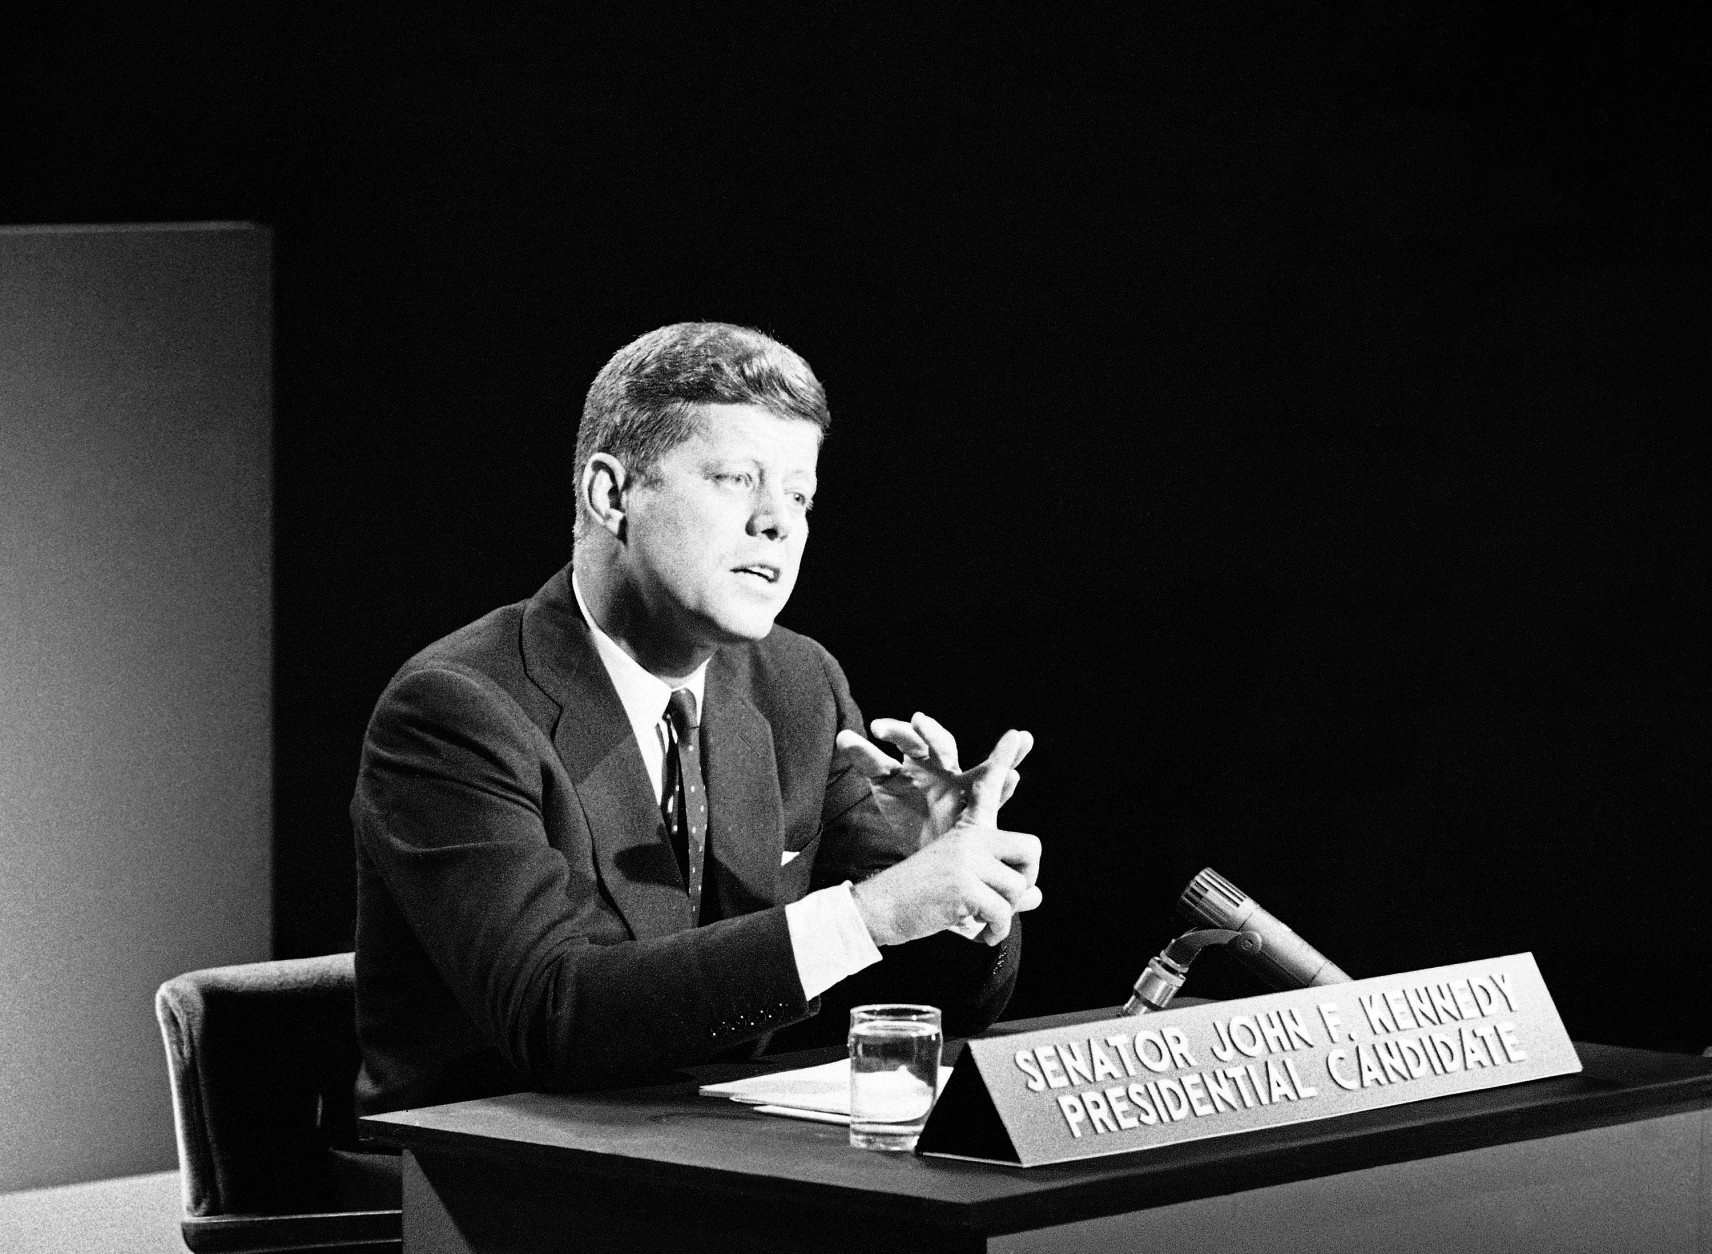 "Sen. John F. Kennedy keeps count with his fingers as he presses a point of view during a Philadelphia appearance on a news panel show ""Face the Nation"" on Oct. 30, 1960 in Philadelphia.  Kennedy carried his democratic presidential campaign into Pennsylvania in quest of the state's 32 electoral votes. (AP Photo/HG)"